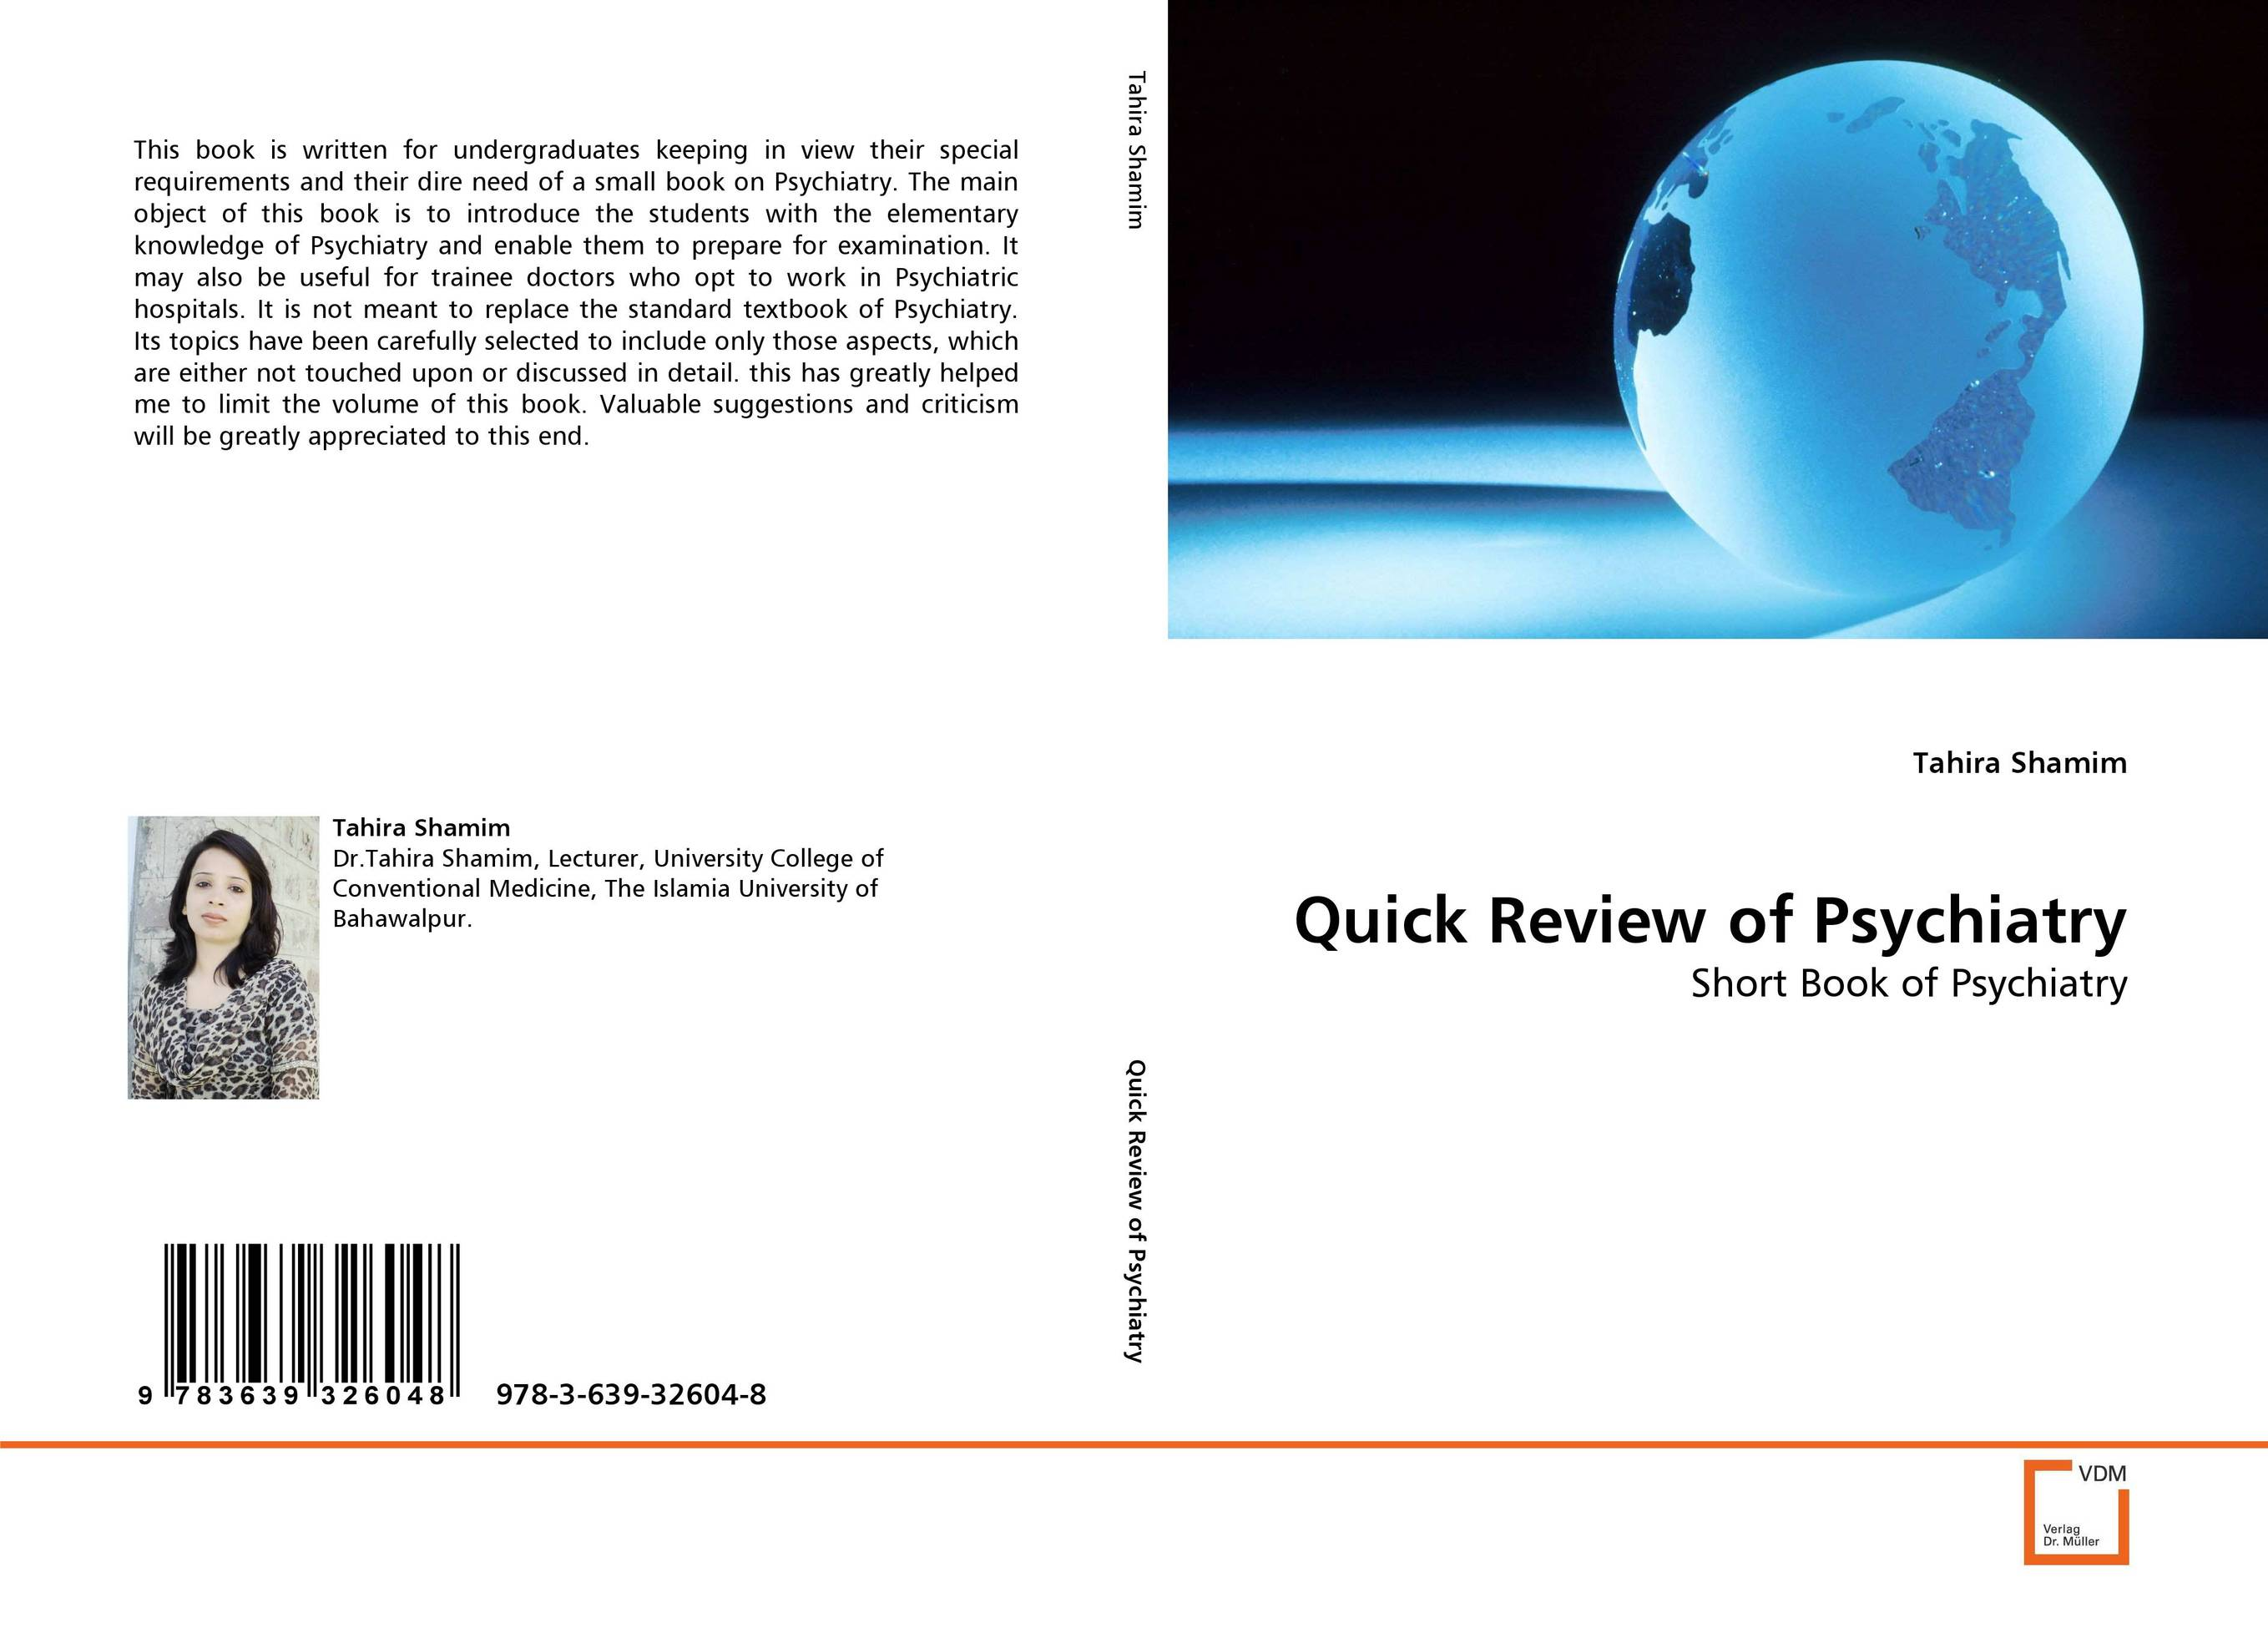 Quick Review of Psychiatry philosophical issues in psychiatry iv